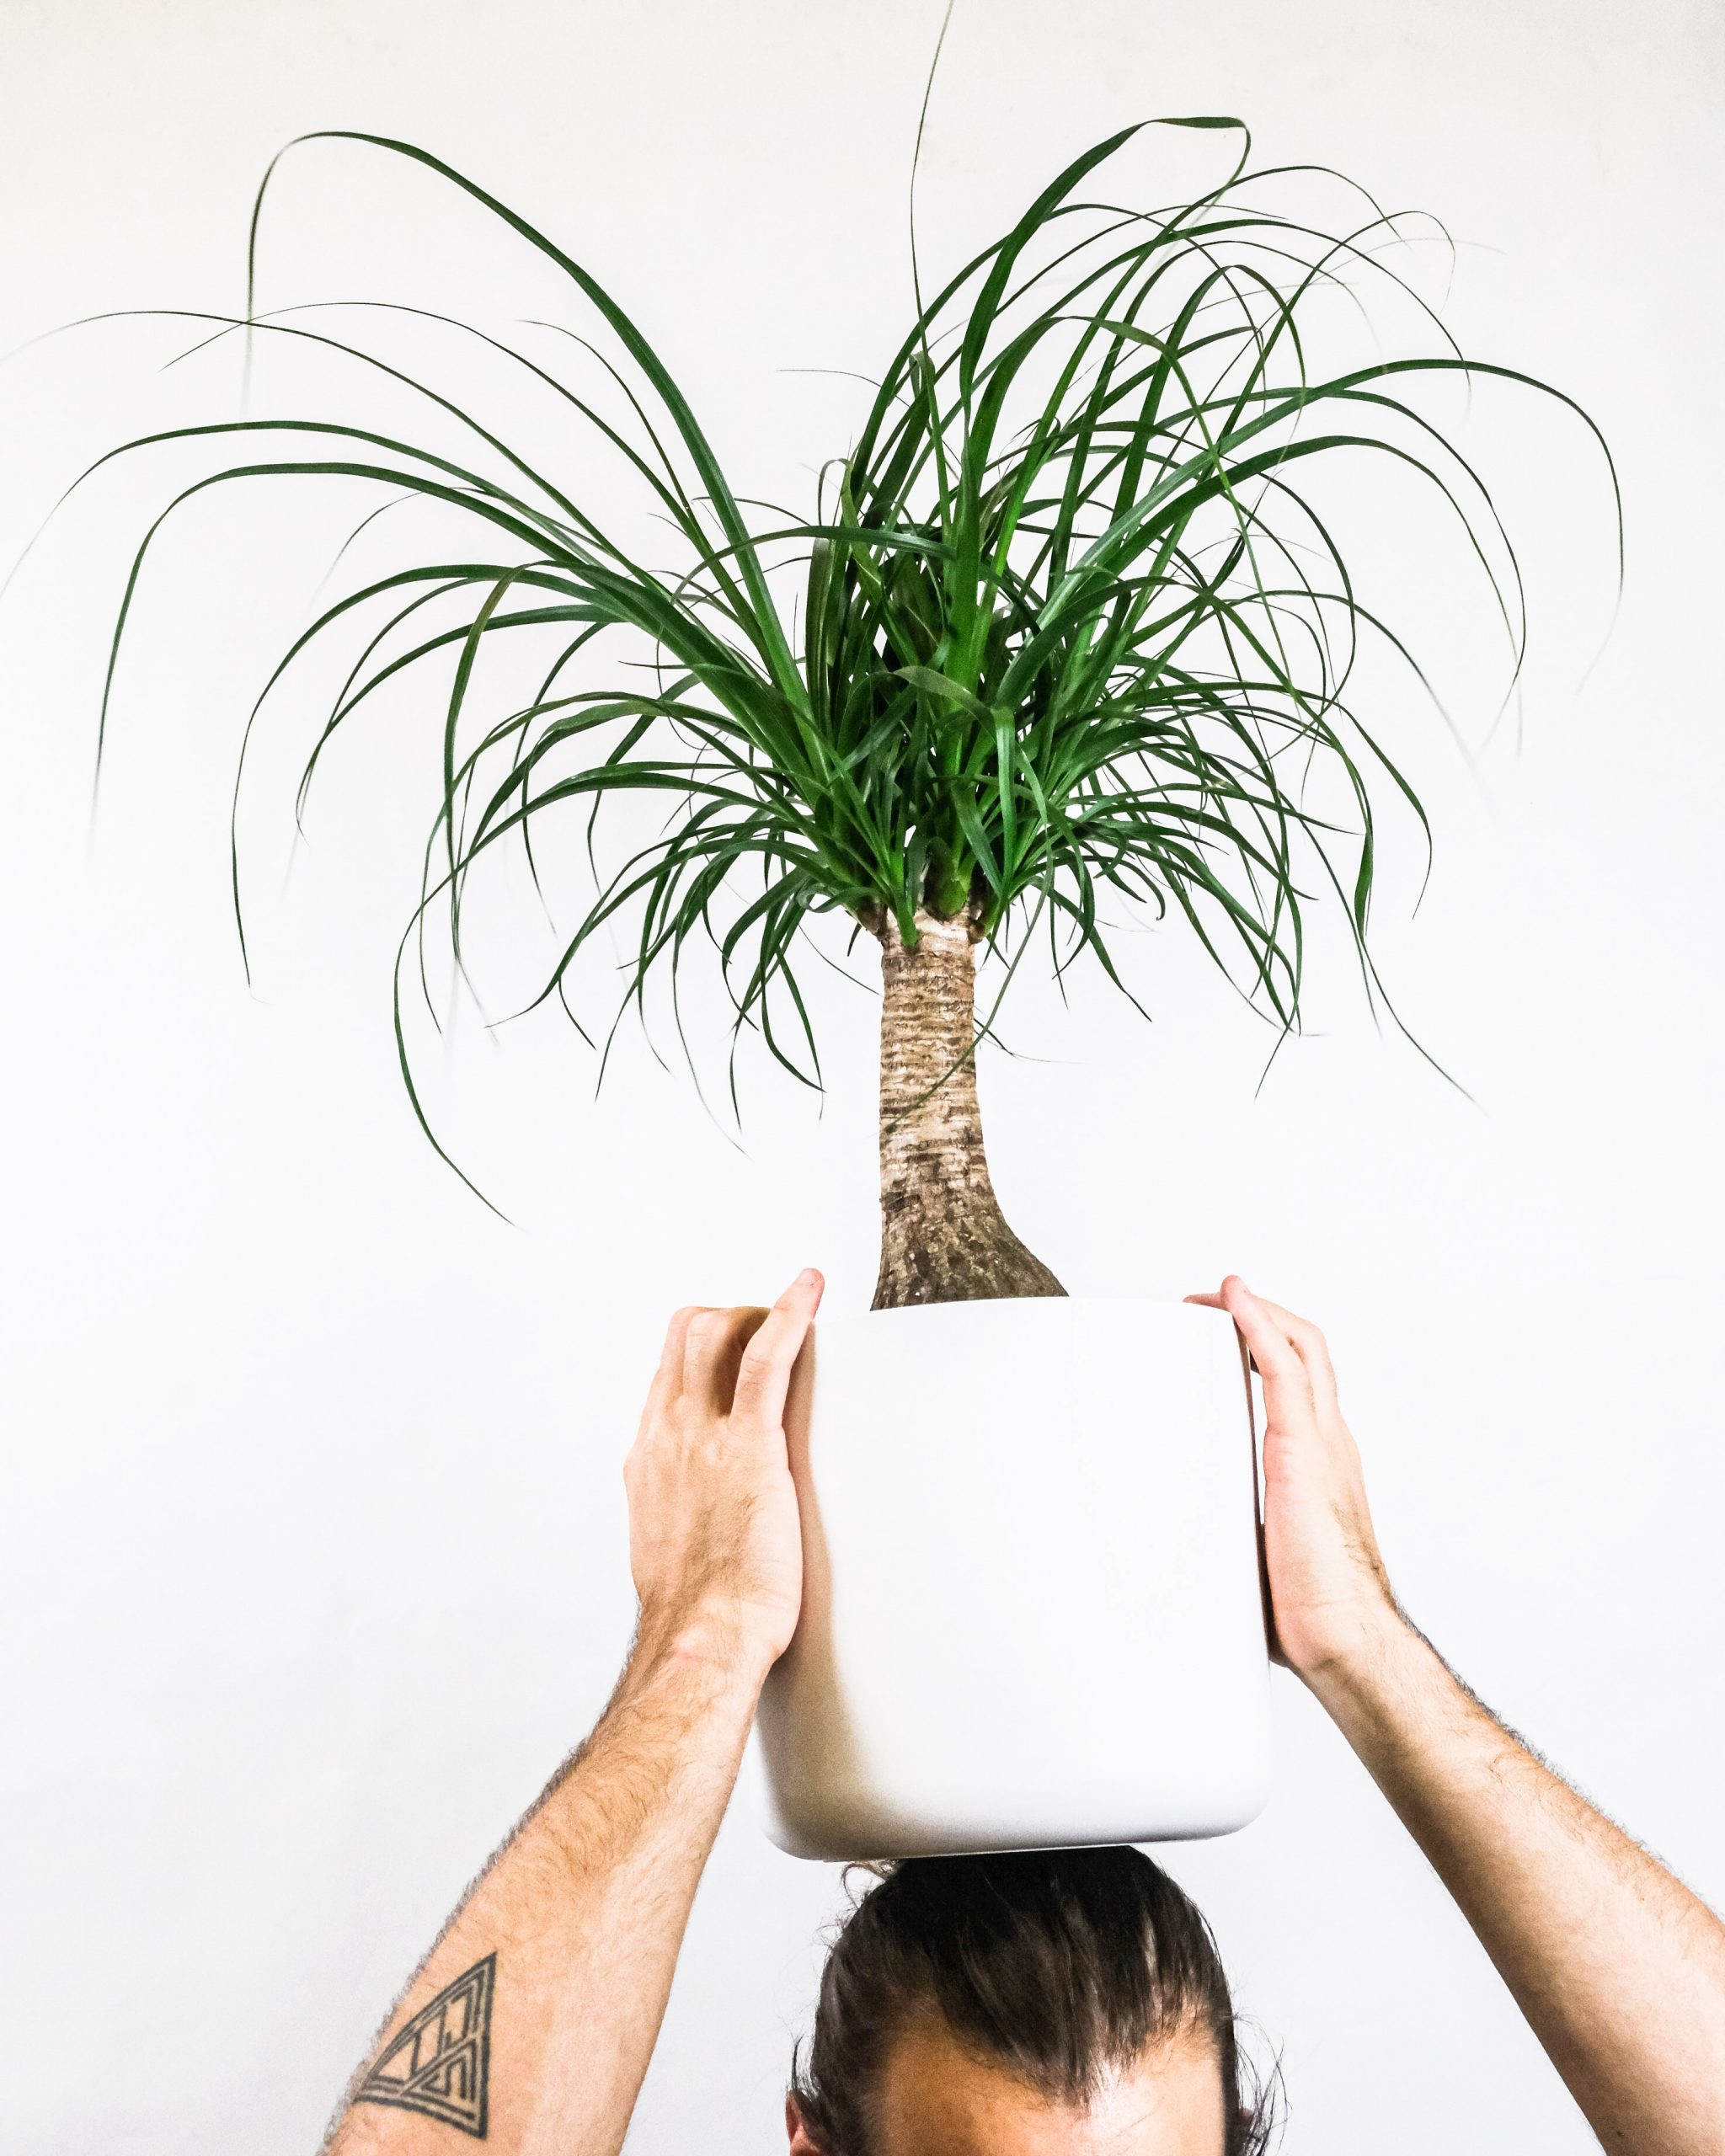 20 Trendy Dog Safe House Plants for 2021 feat. Ponytail Palm - Image via Unsplash, photo by Severin Candrian